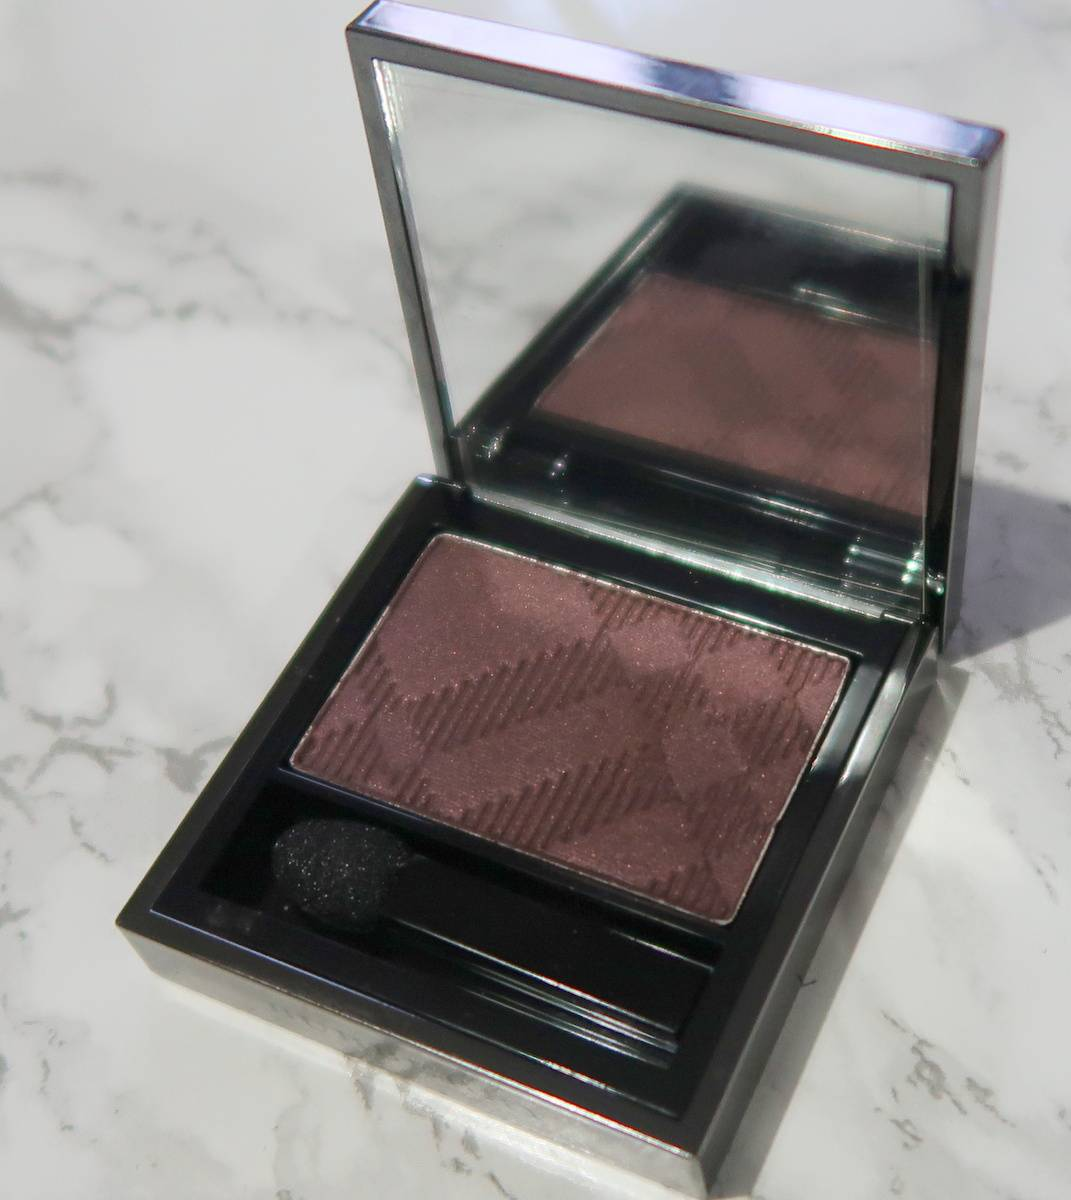 Burberry Mulberry mono eyeshadow